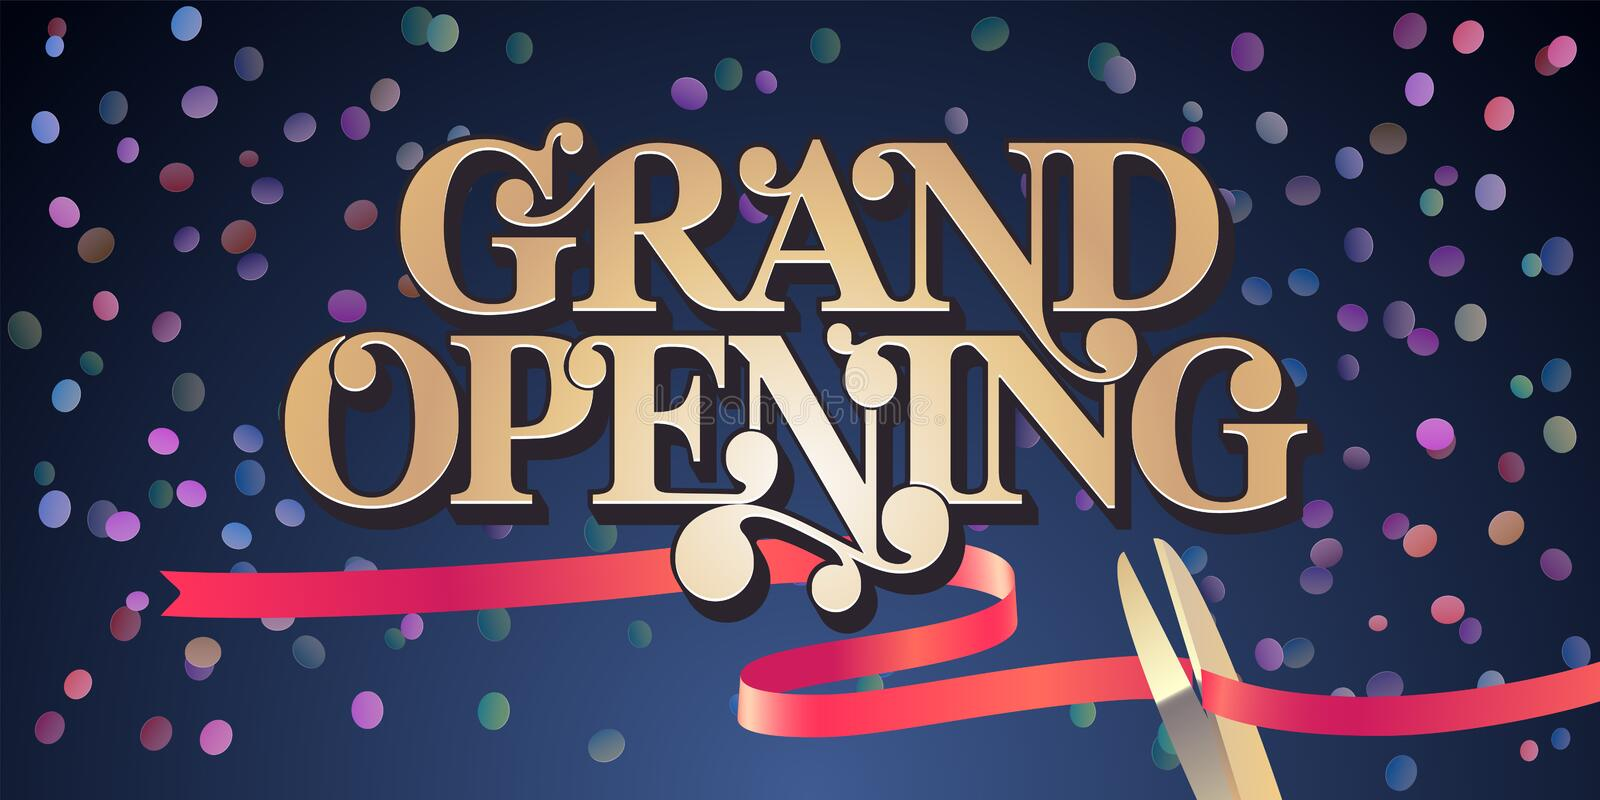 Grand opening vector illustration, background with golden lettering sign and scissors cutting ribbon stock illustration